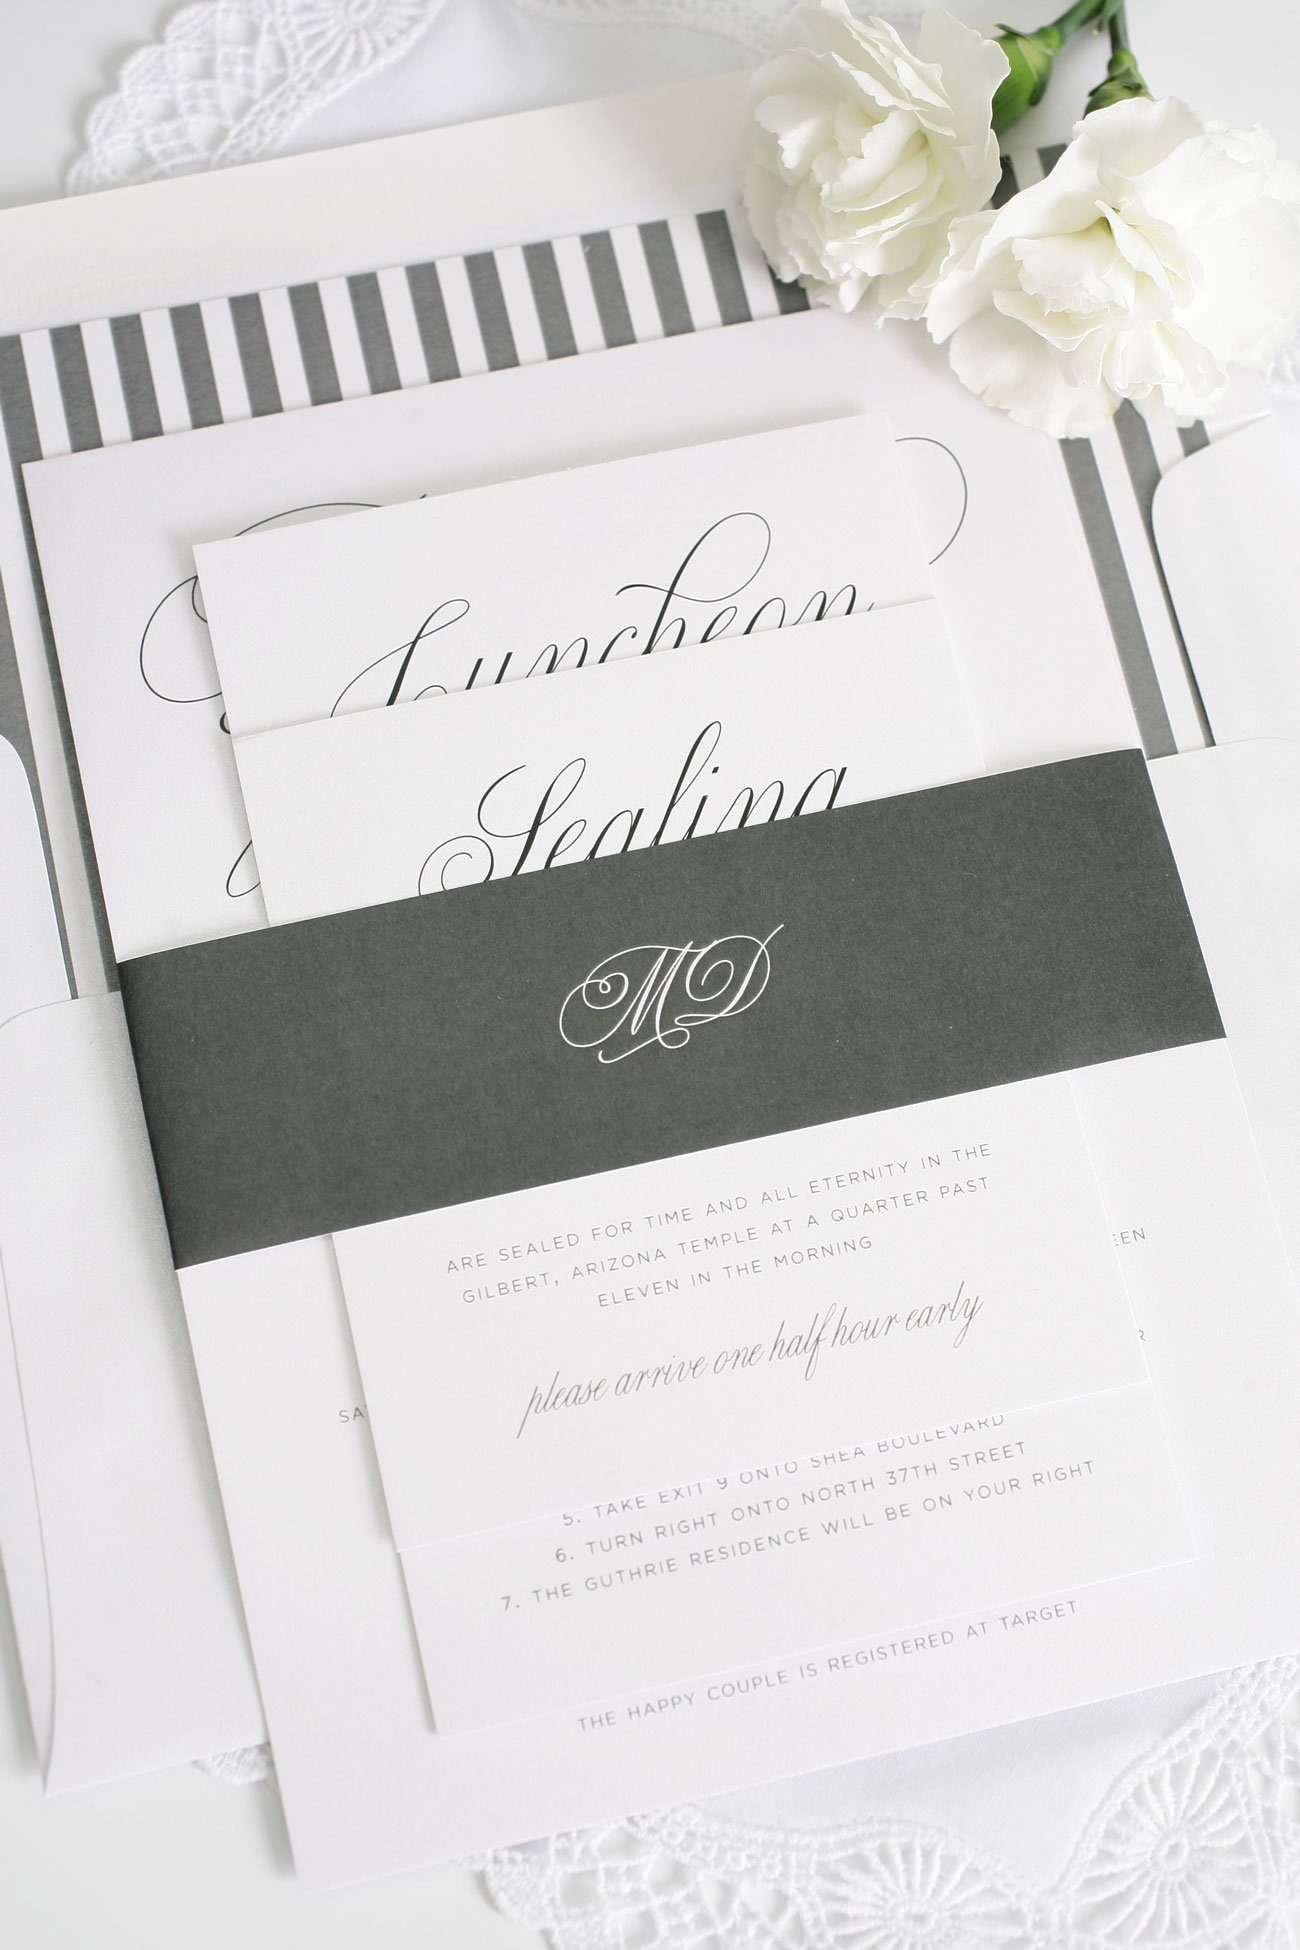 Romantic Wedding Invitations in Charcoal Wedding Invitations – Garden Party Wedding Invitations